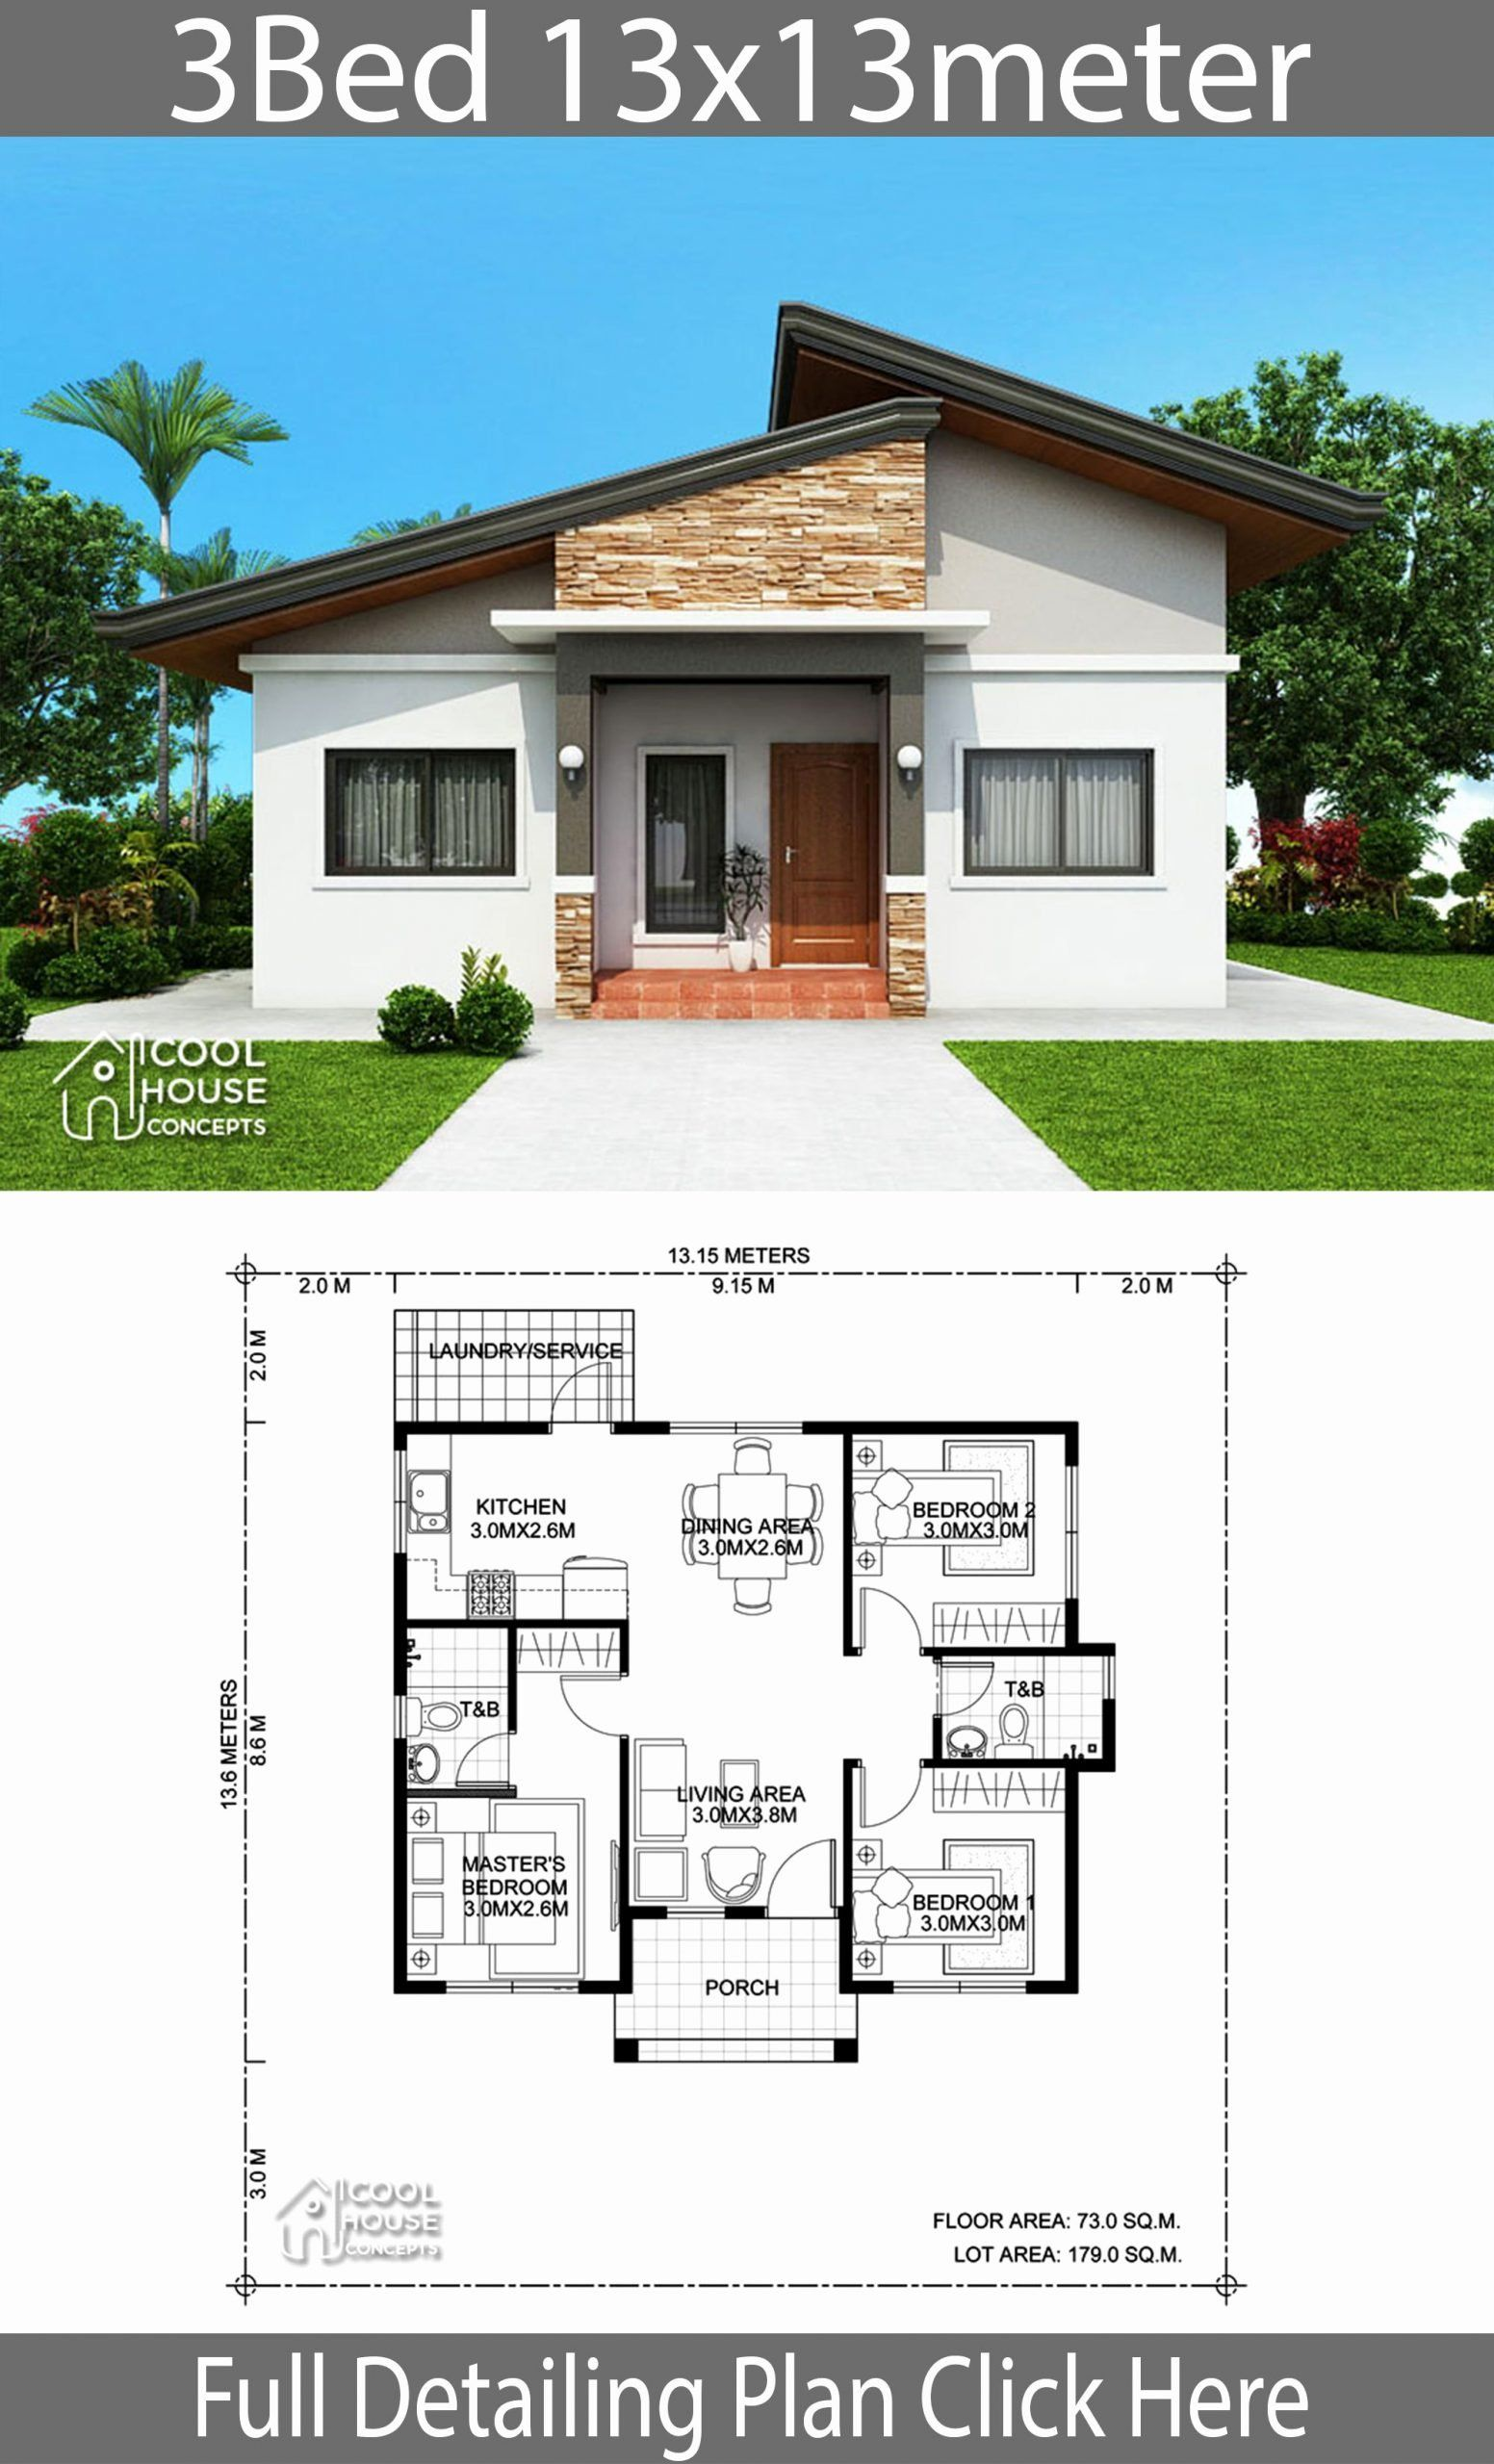 Three Bedroom Tiny House Plans New 3 Br 2 Ba Under 800 Ft2 Modern Bungalow House Design Modern Bungalow House Beautiful House Plans